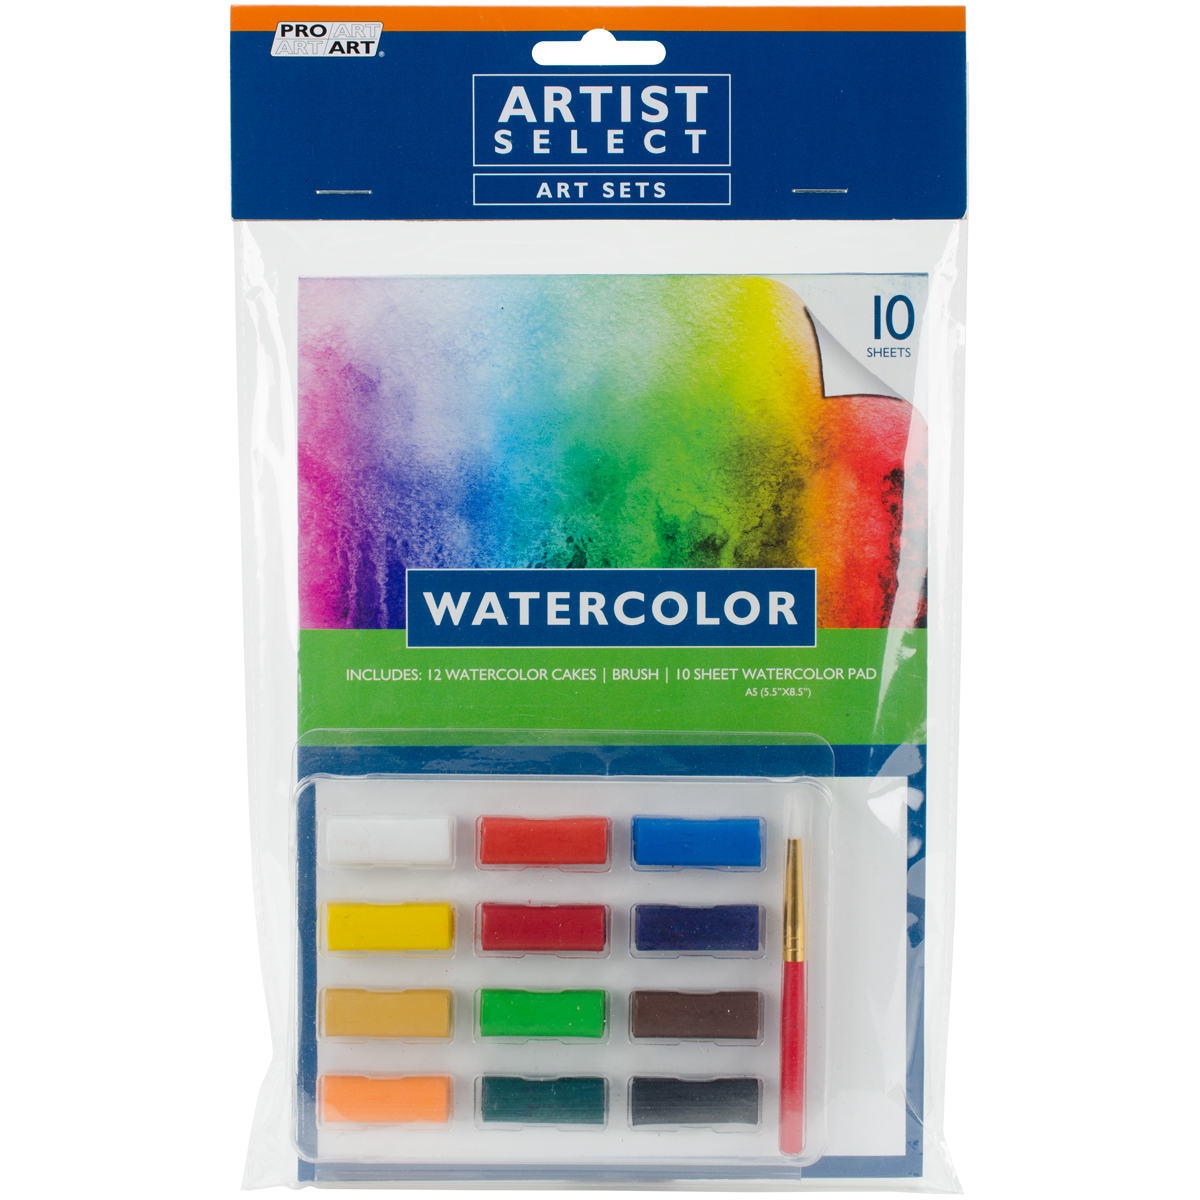 Pro Art Watercolor Set-12pcs